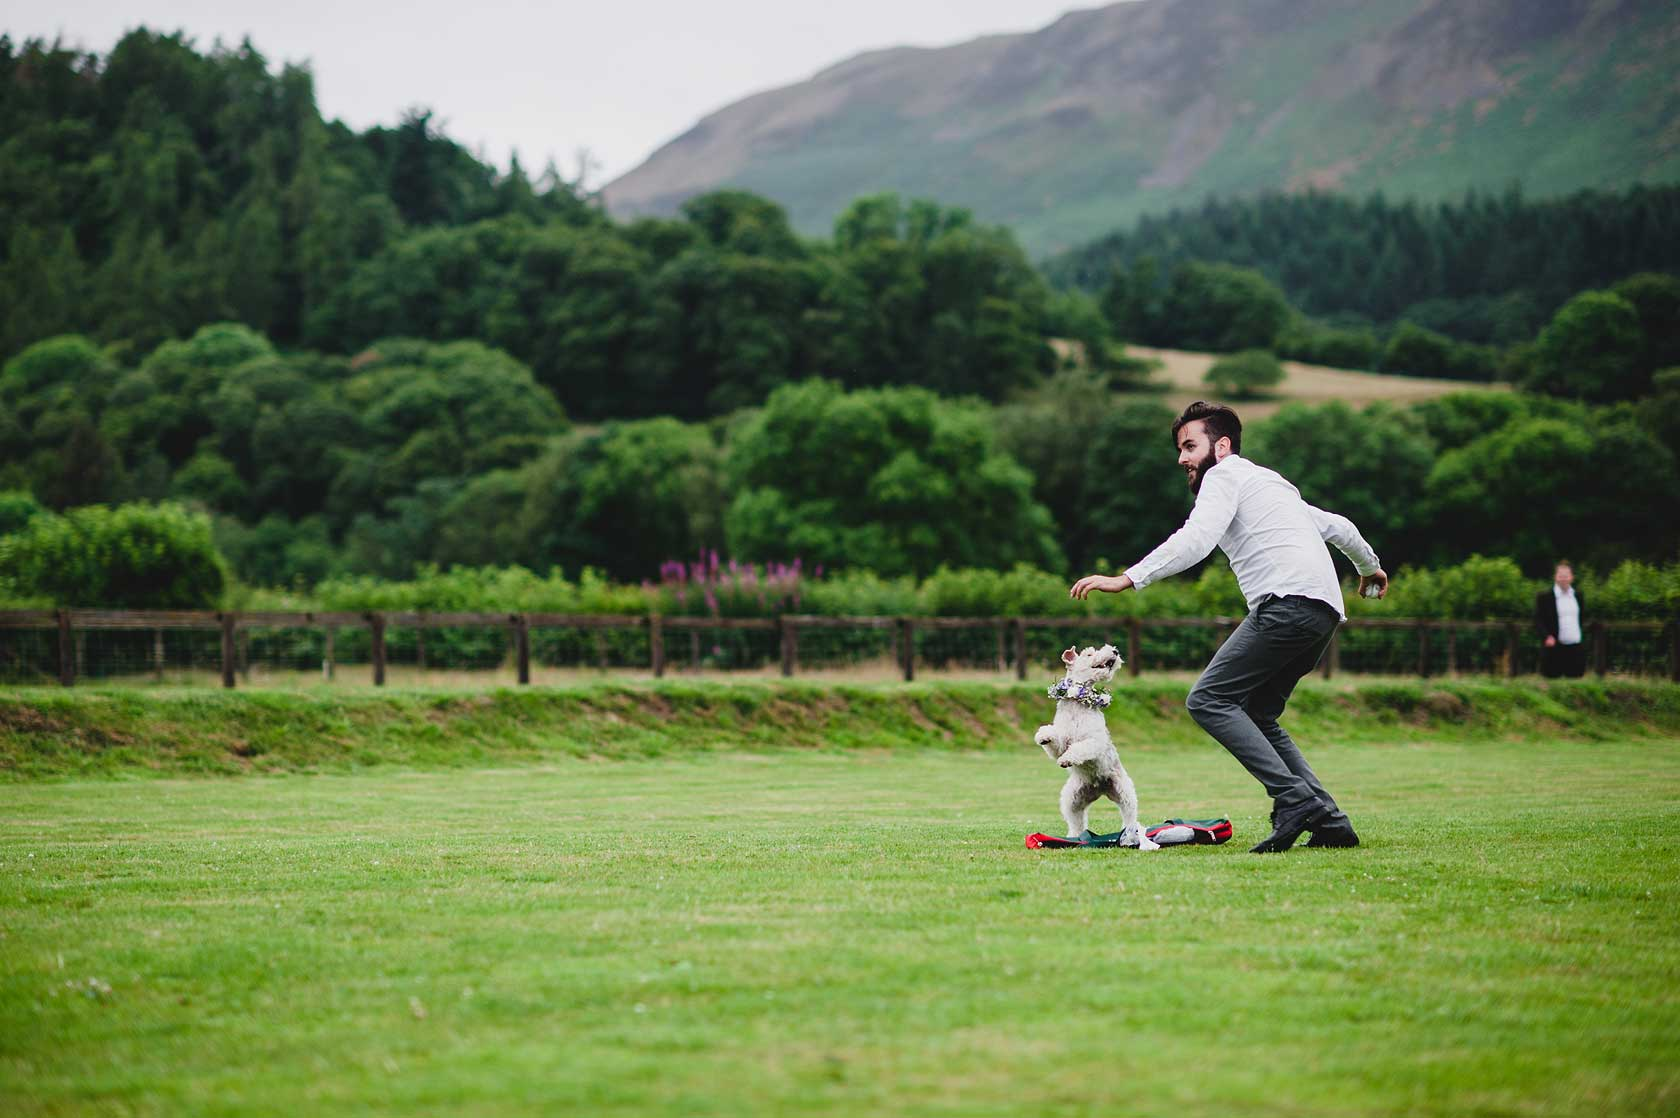 Reportage Wedding Photography at New House Farm